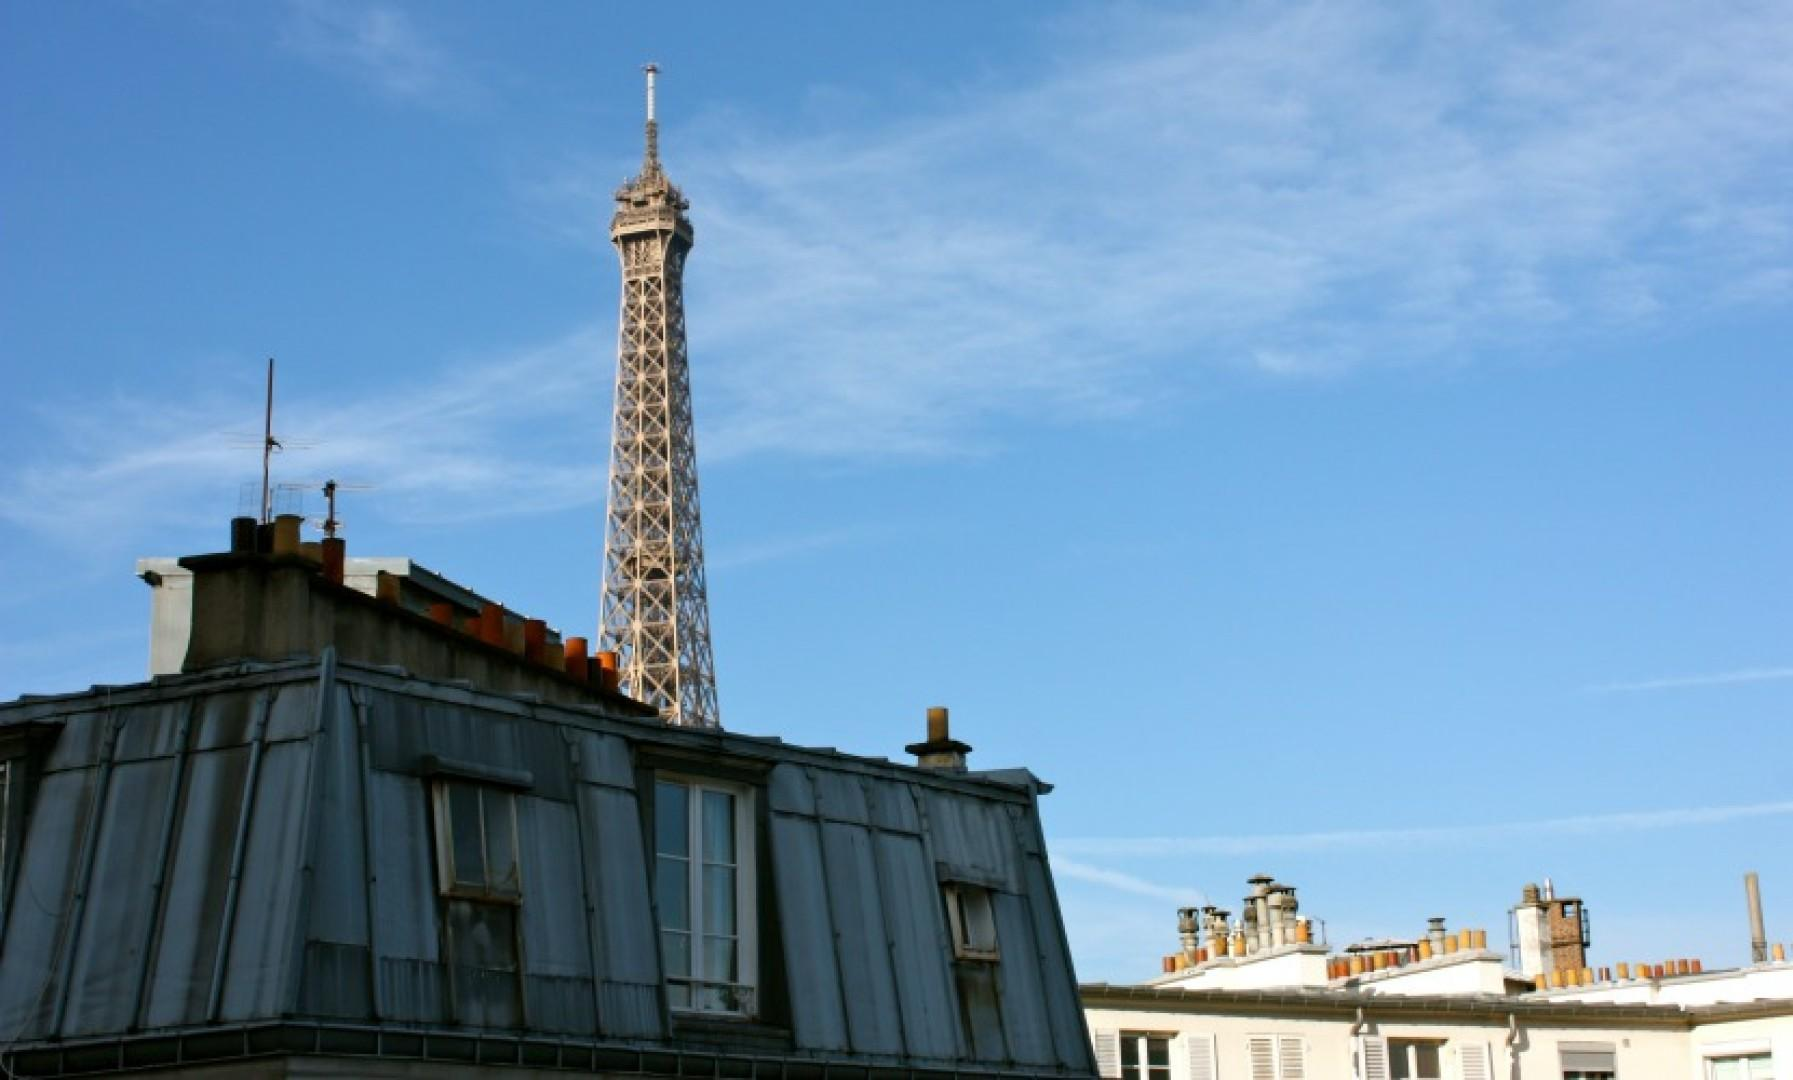 The incredible view across the rooftops to the Eiffel Tower is yours!